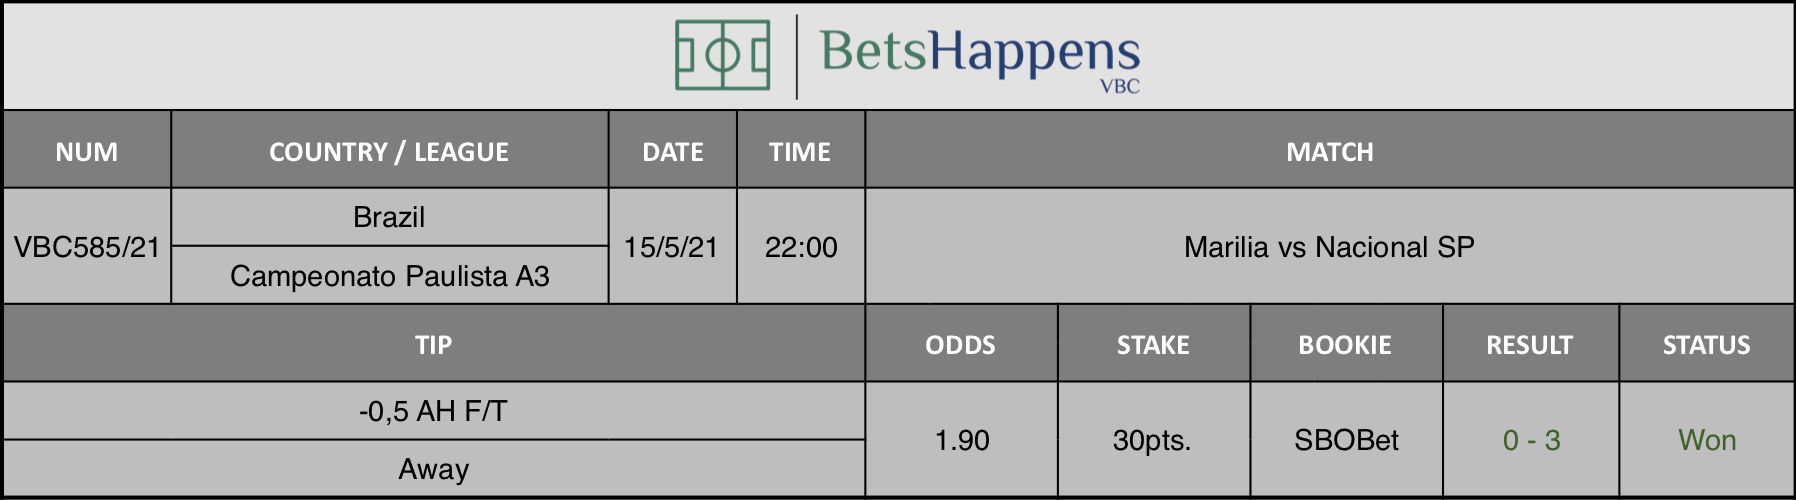 Results of our tip for the Marilia vs Nacional SP match where -0,5 AH F/T Away is recommended.